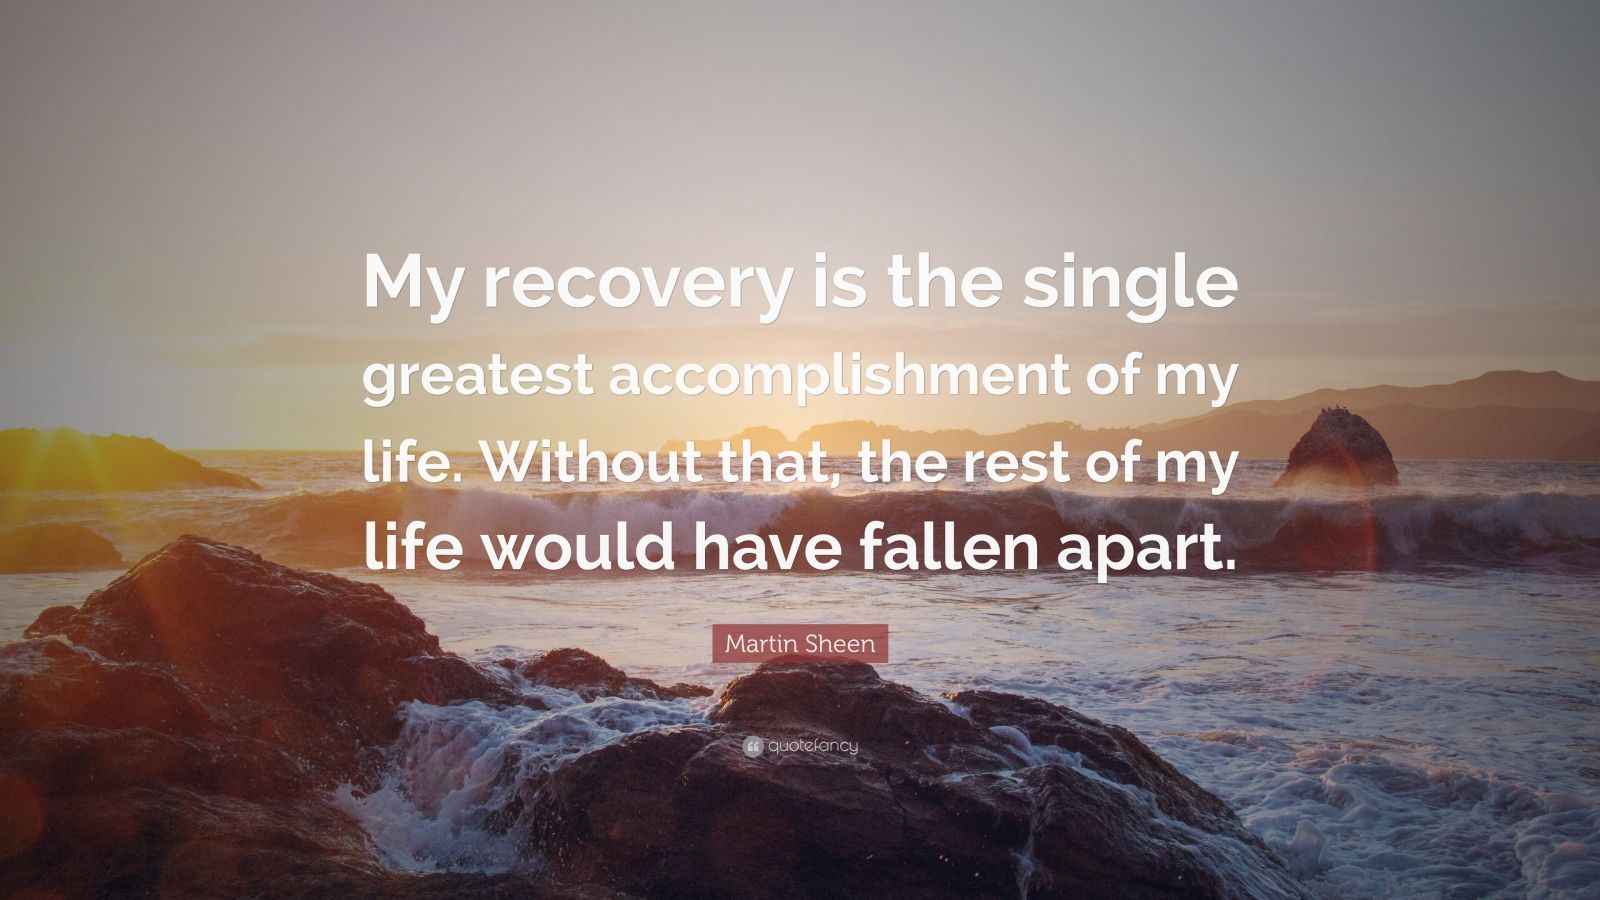 """Martin Sheen Quote: """"My recovery is the single greatest accomplishment of my life. Without that, the rest of my life would have fallen apart."""""""